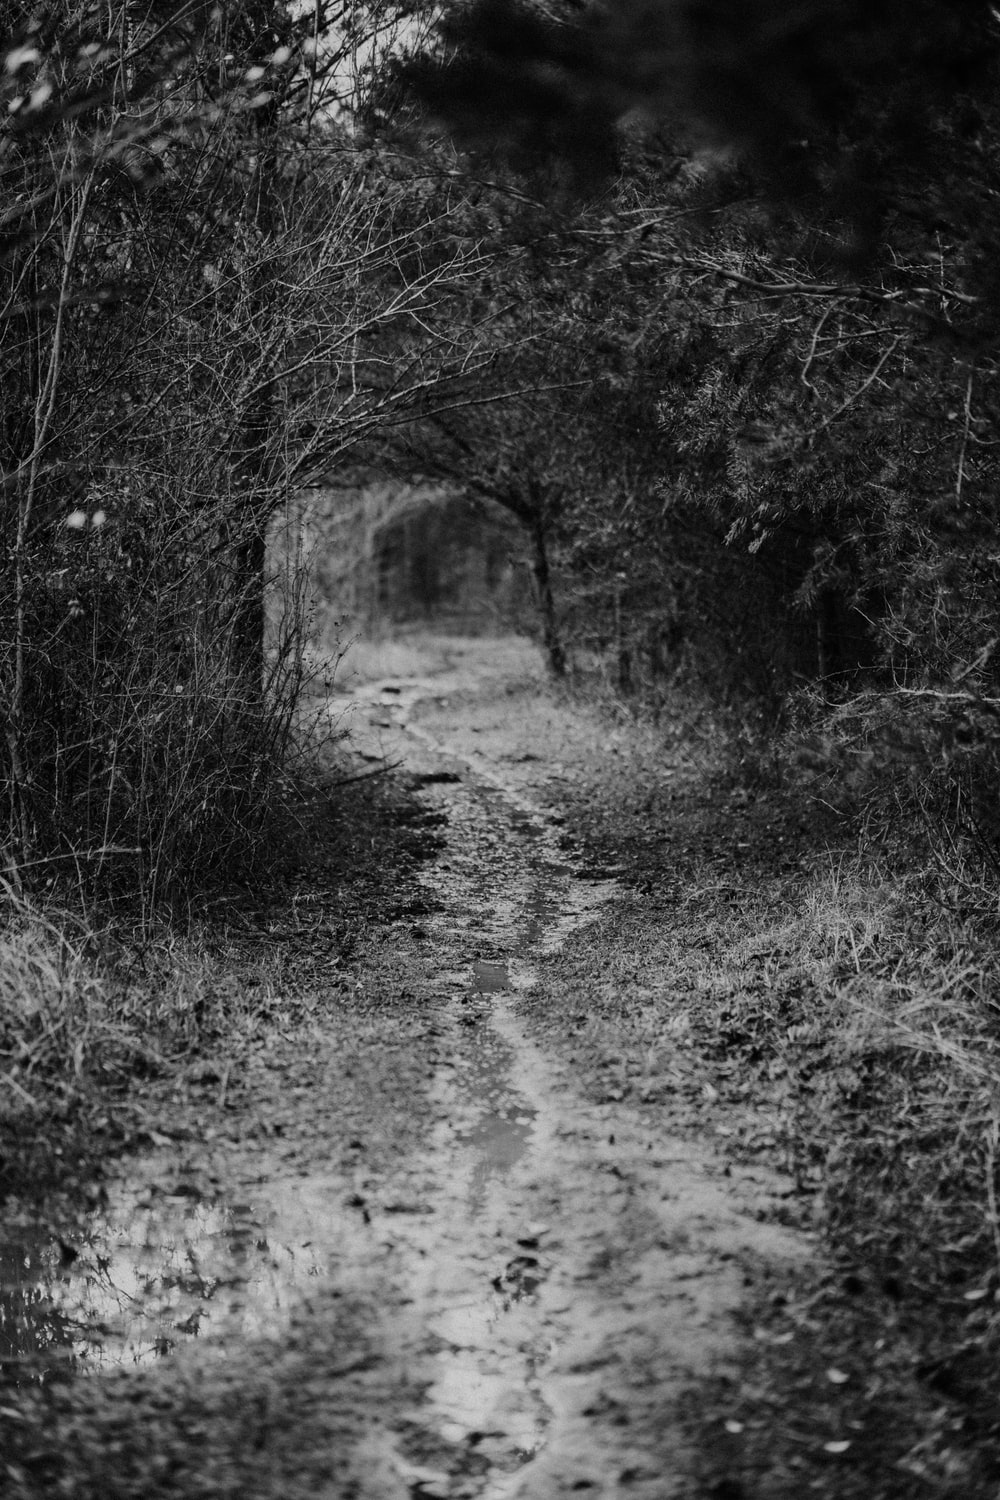 grayscale photo of pathway between trees